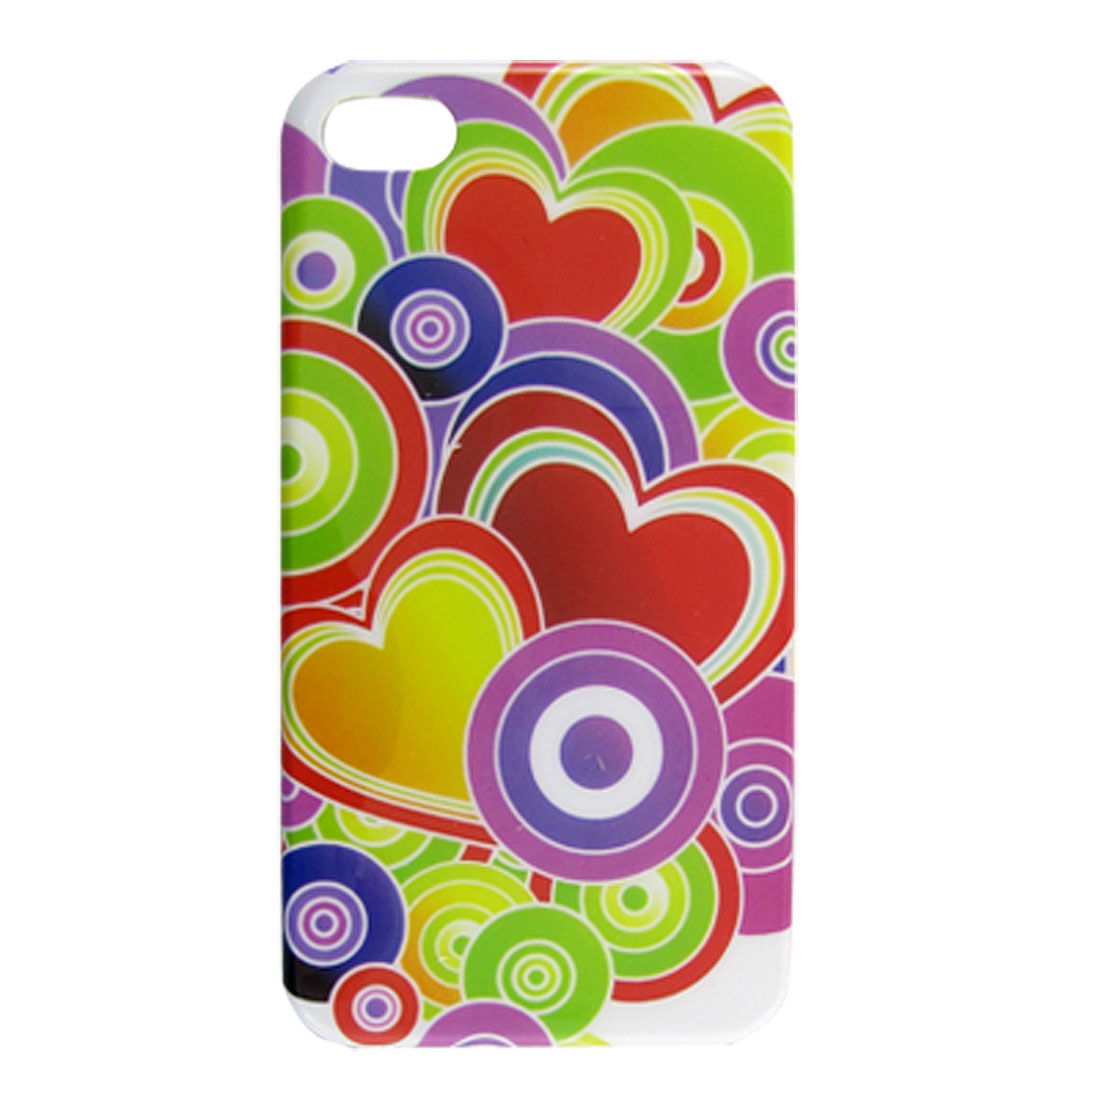 Hard Plastic IMD Pastel Heart Print Back Case for iPhone 4 4S - image 1 of 1